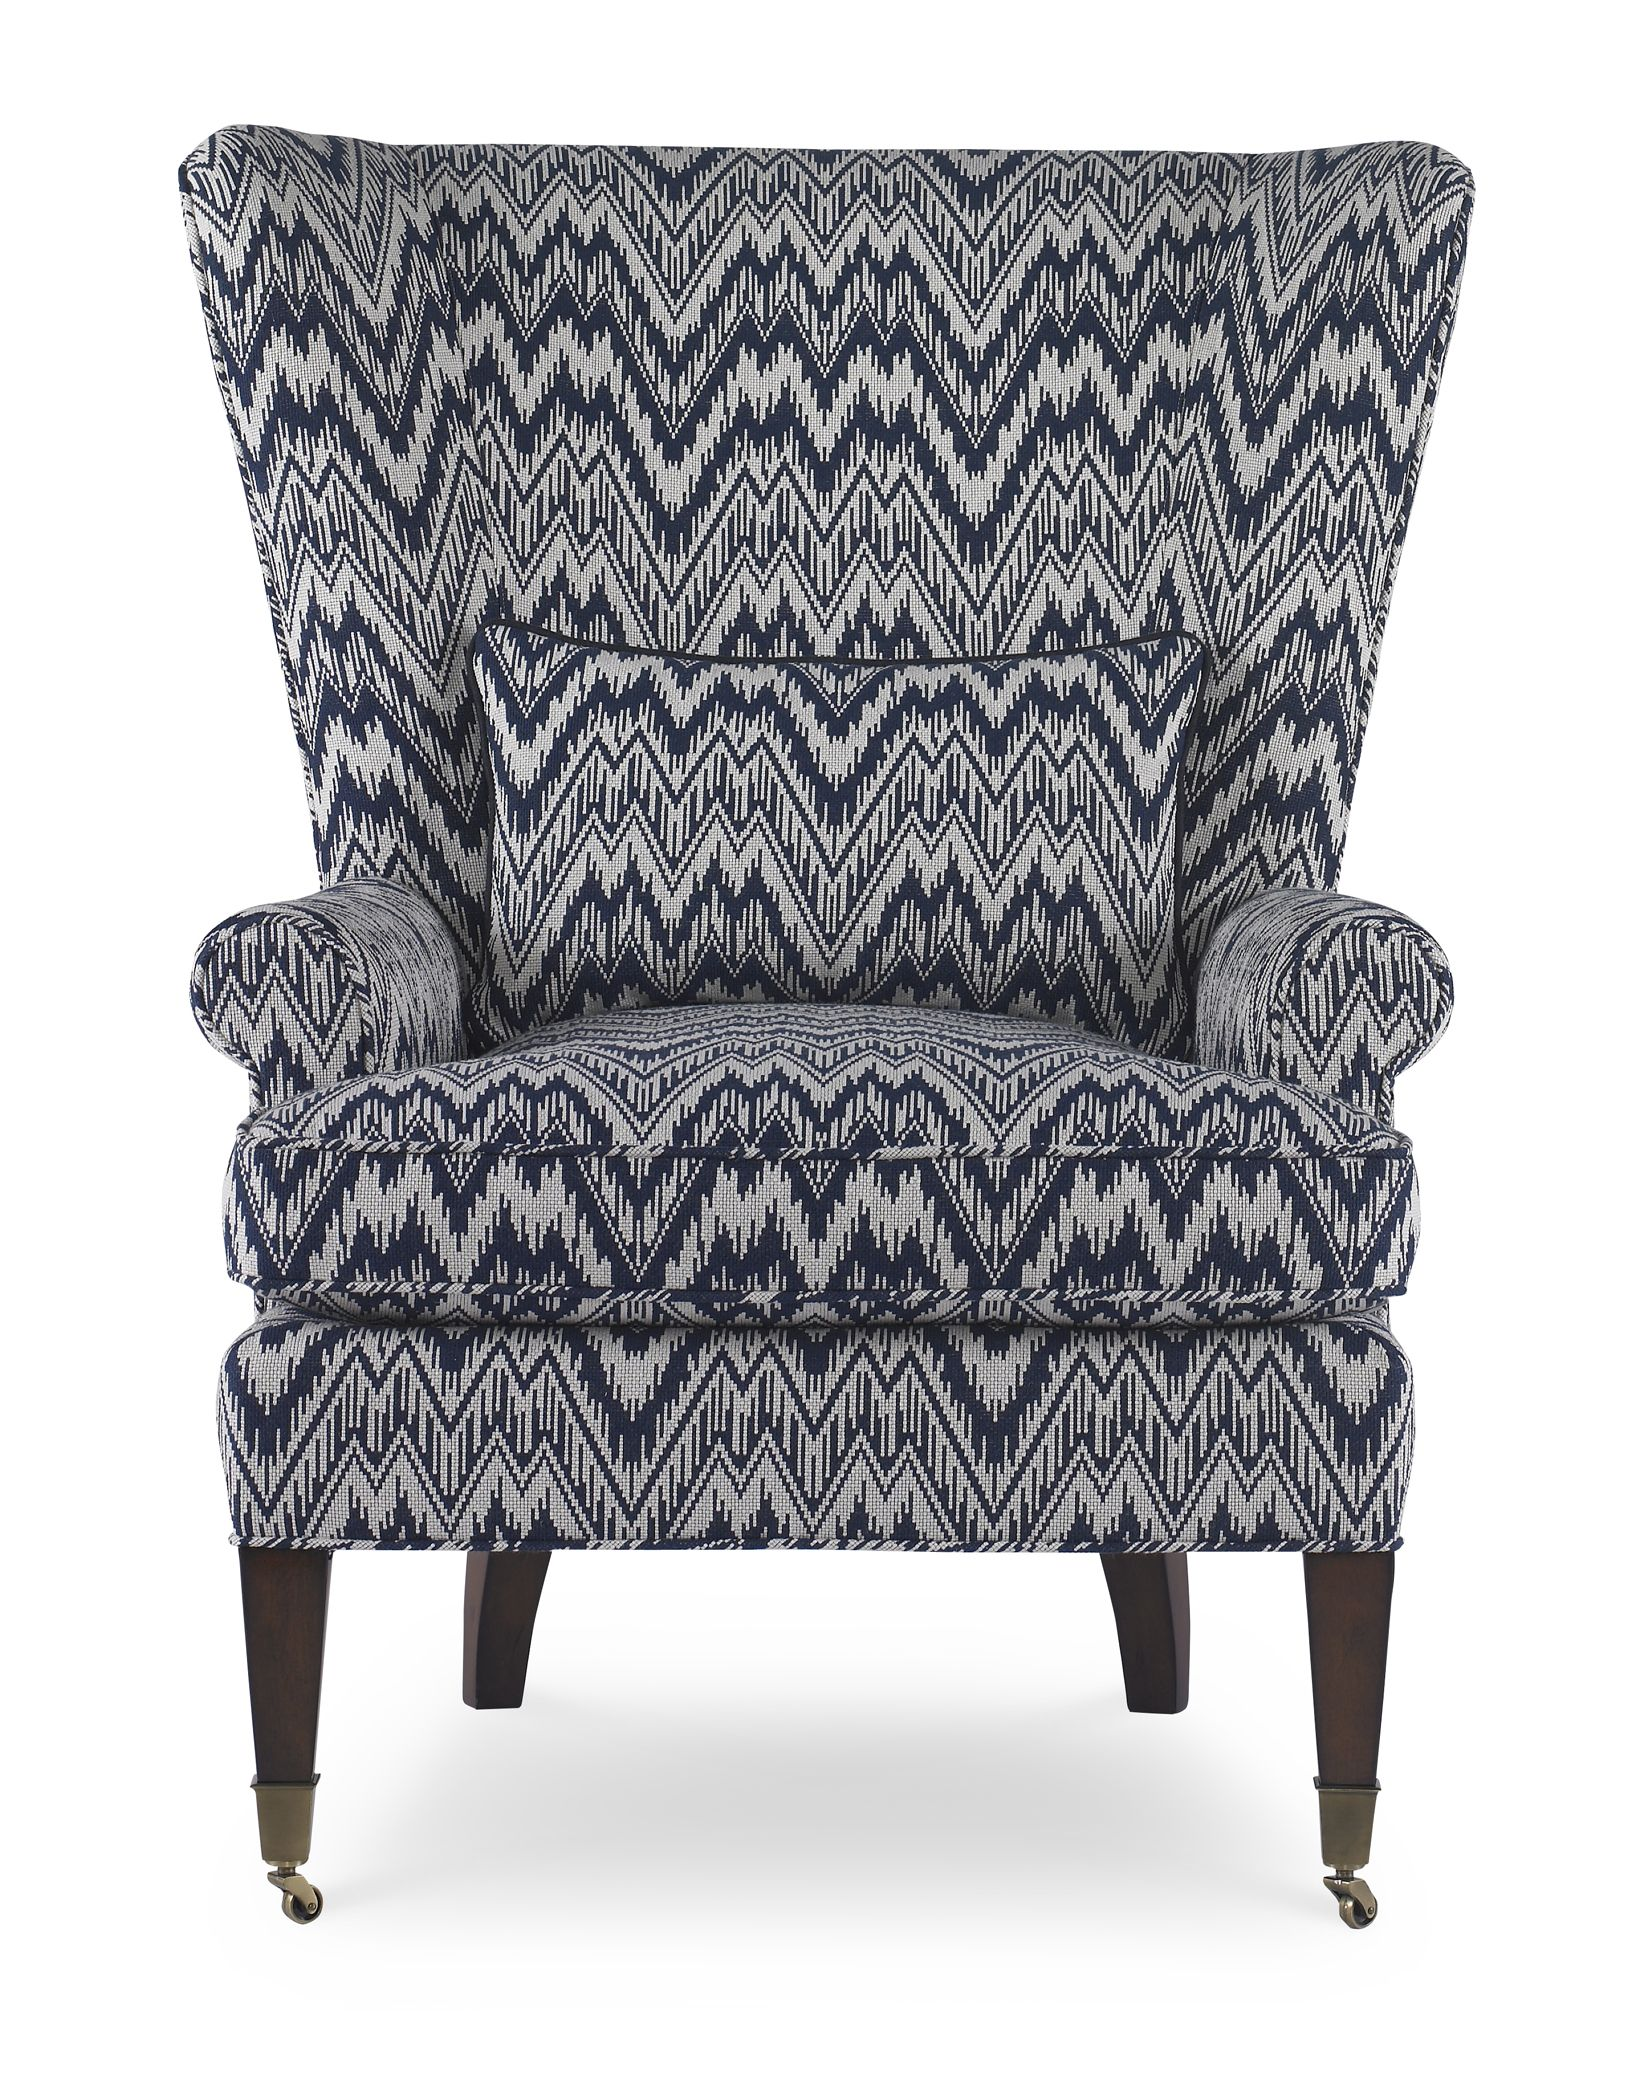 Blue And White Upholstered Chairs Green Chair Covers For Sale Pearson S 491 Wing In Peaarson Flamestitch